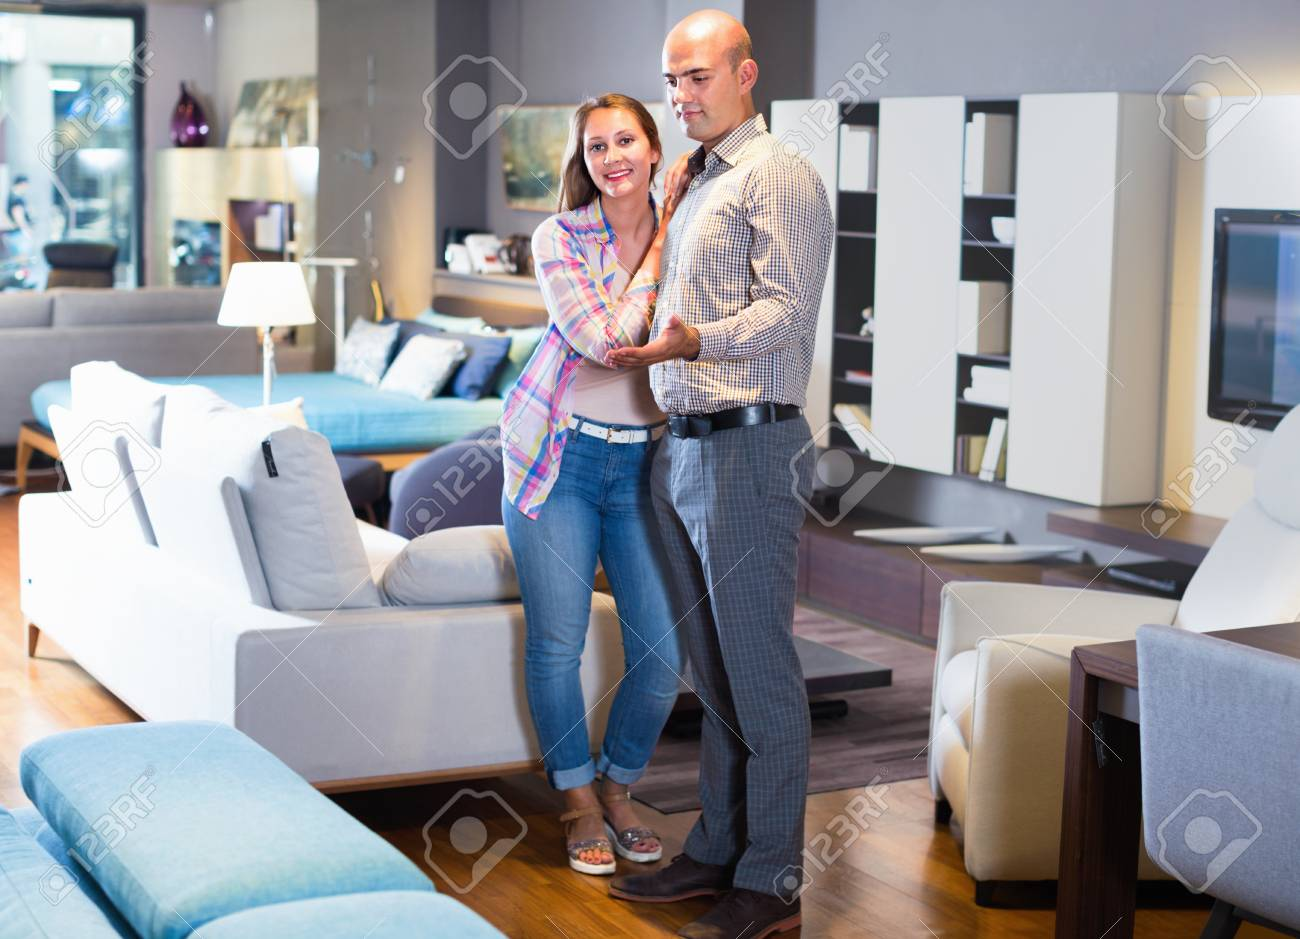 Cheerful Married Couple Looking For New Stylish Sofa In Furniture Stock Photo Picture And Royalty Free Image Image 84473066